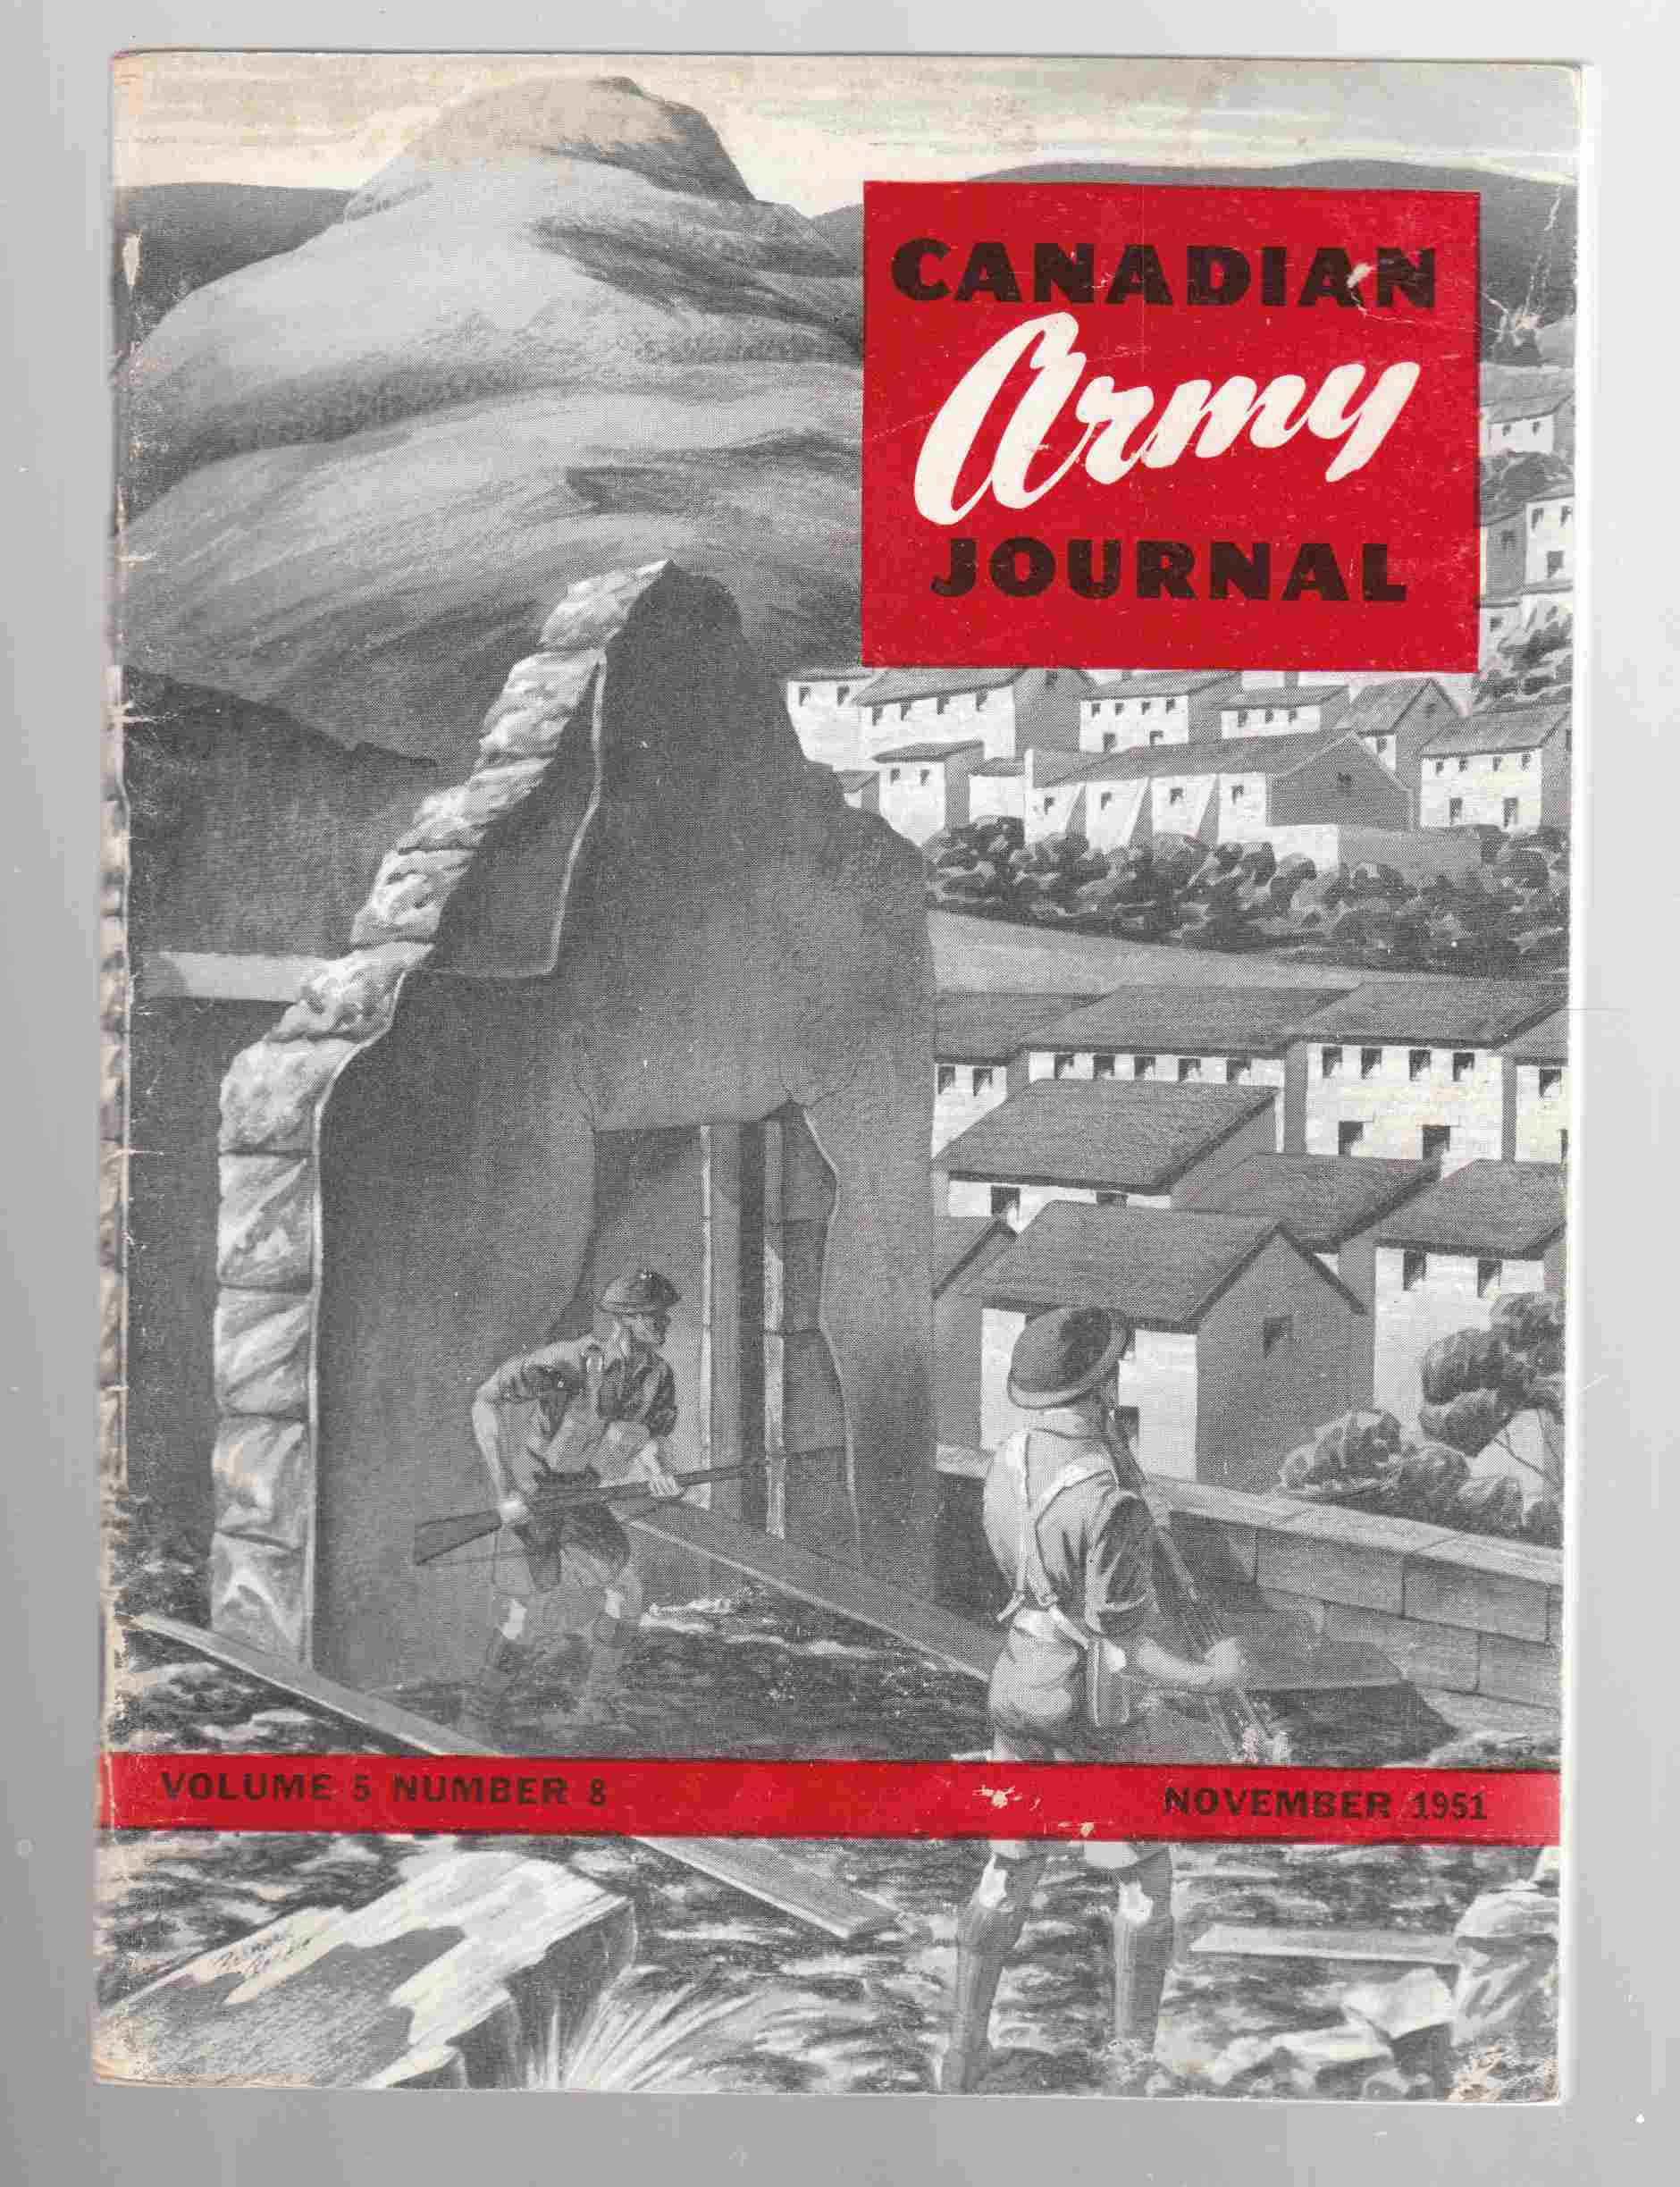 Image for Canadian Army Journal Volume 5 Number 8 November 1951